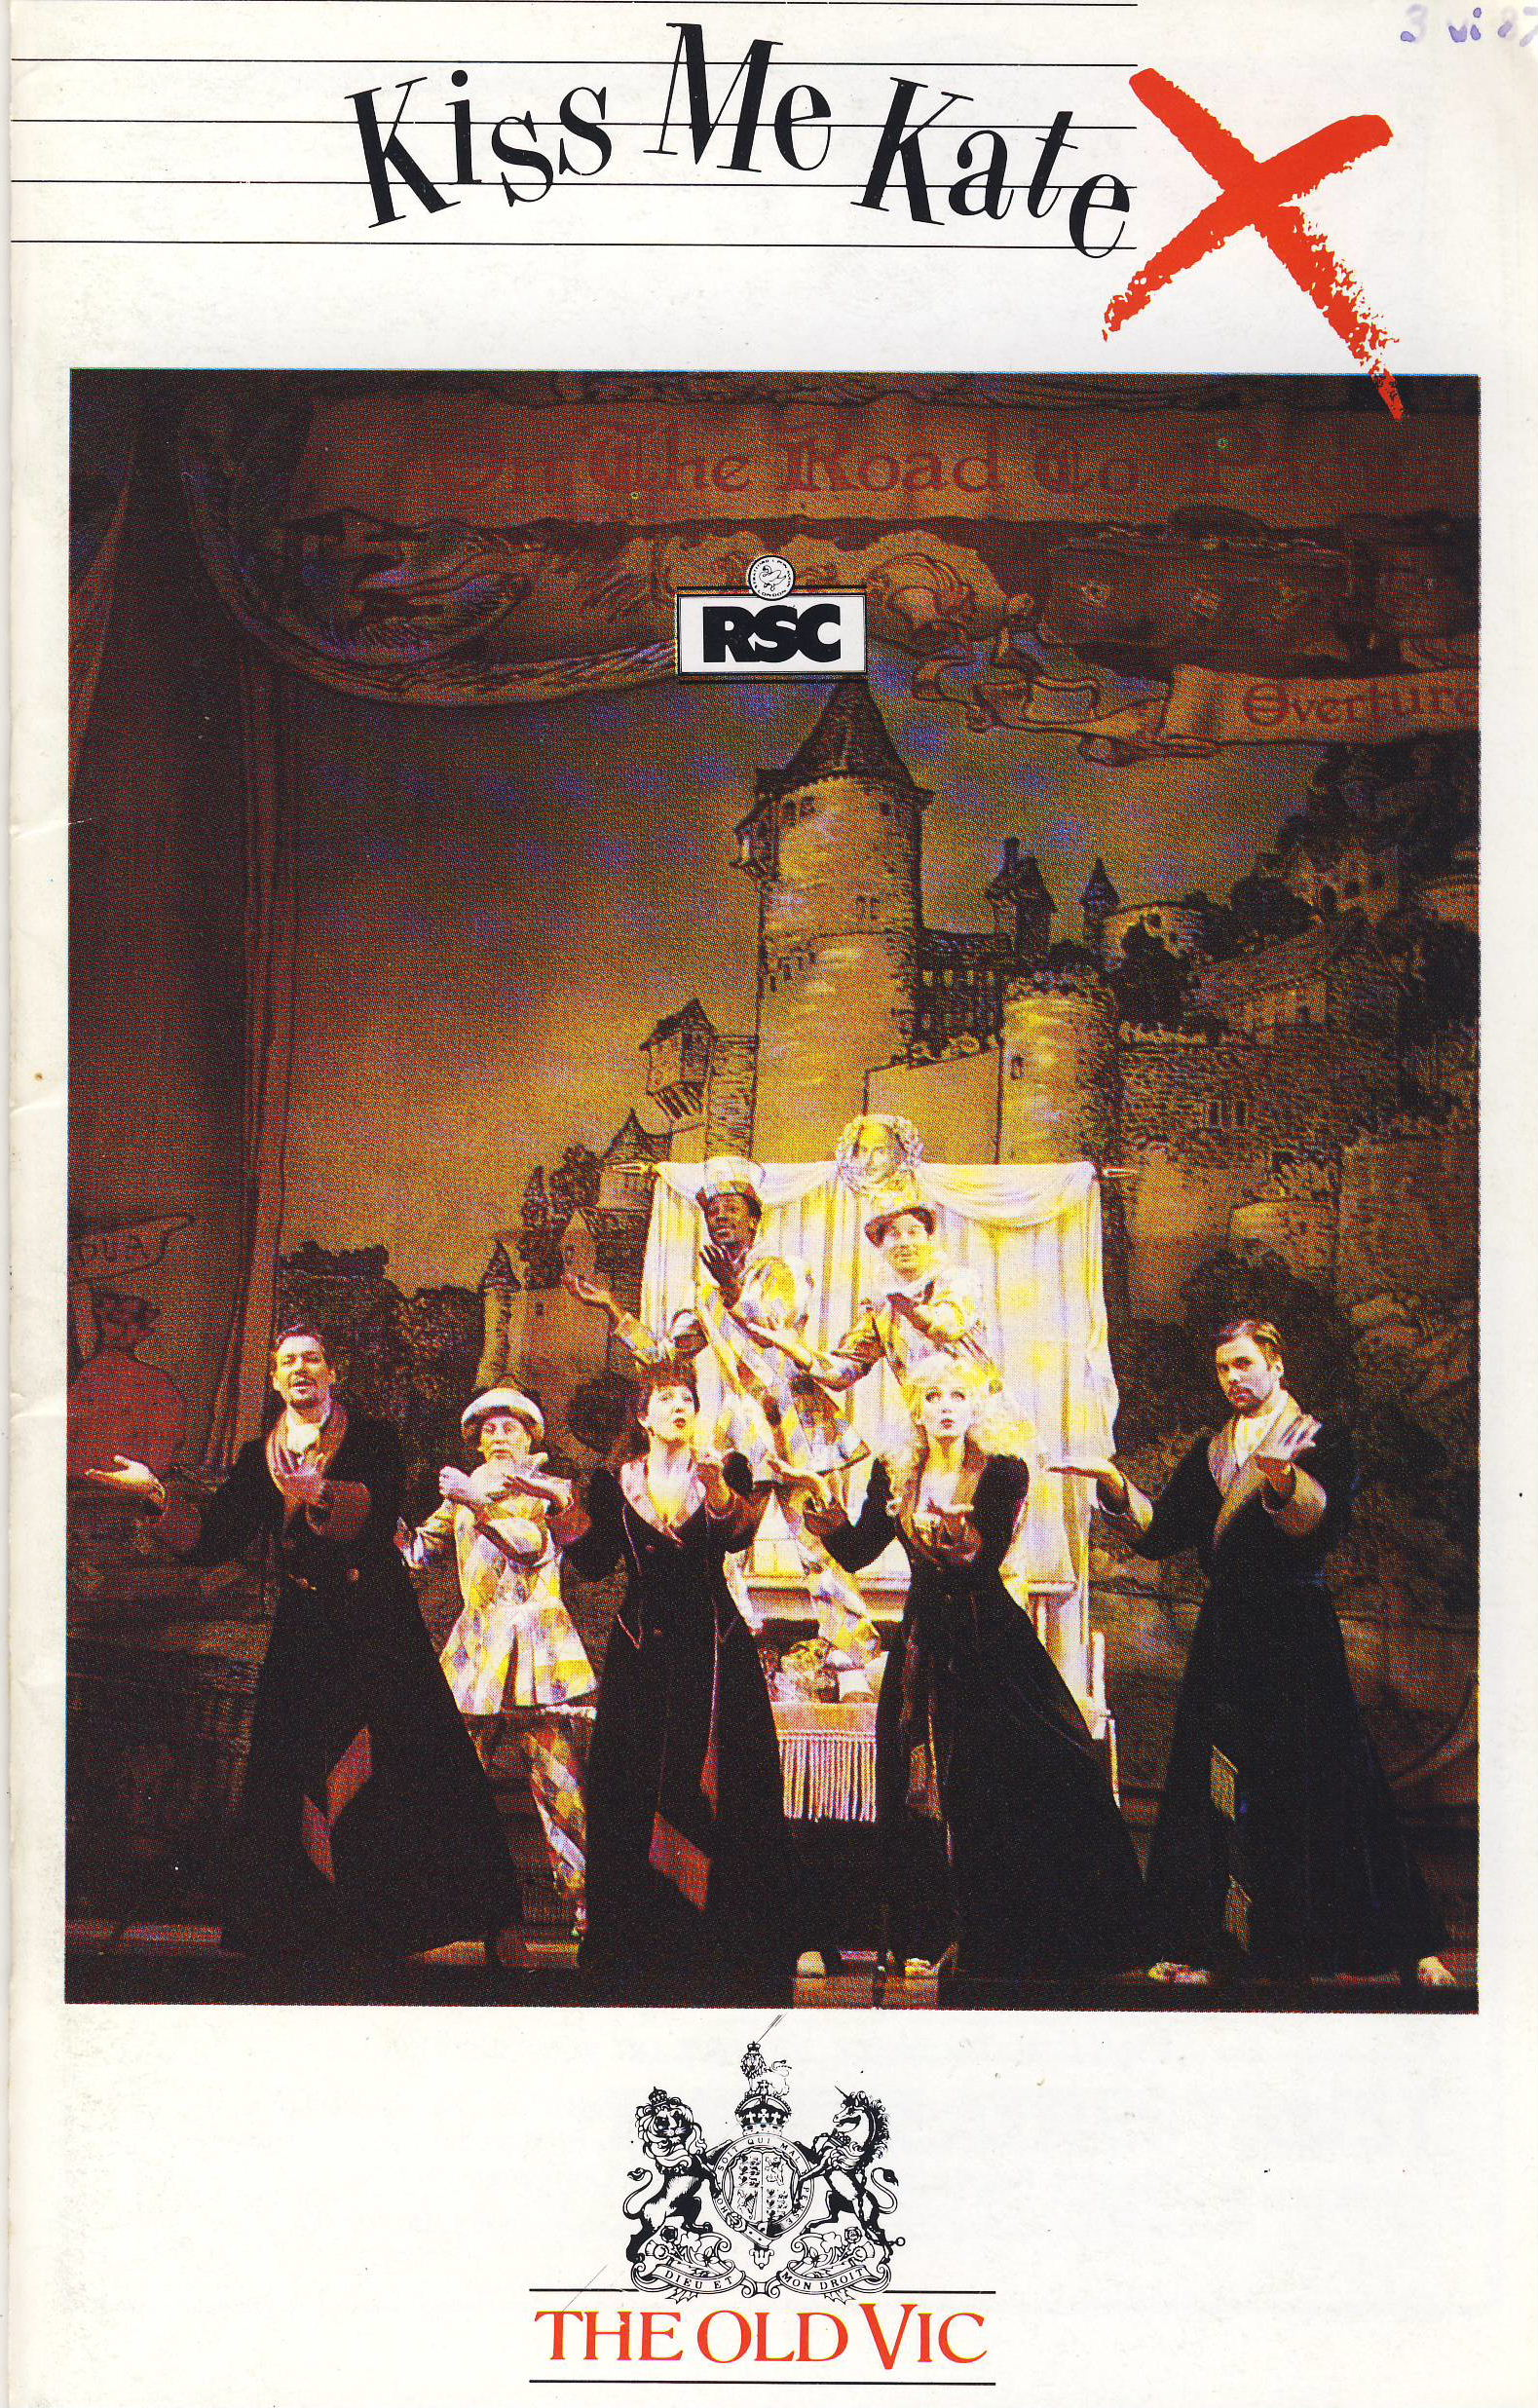 1987 KISS M KATE RSC Vintage Old Vic Theatre Programme ref101717 The Taming of the Shrew Vintage RSC brochure is pre-owned in used condition. Measure approx 21cm x 15cm